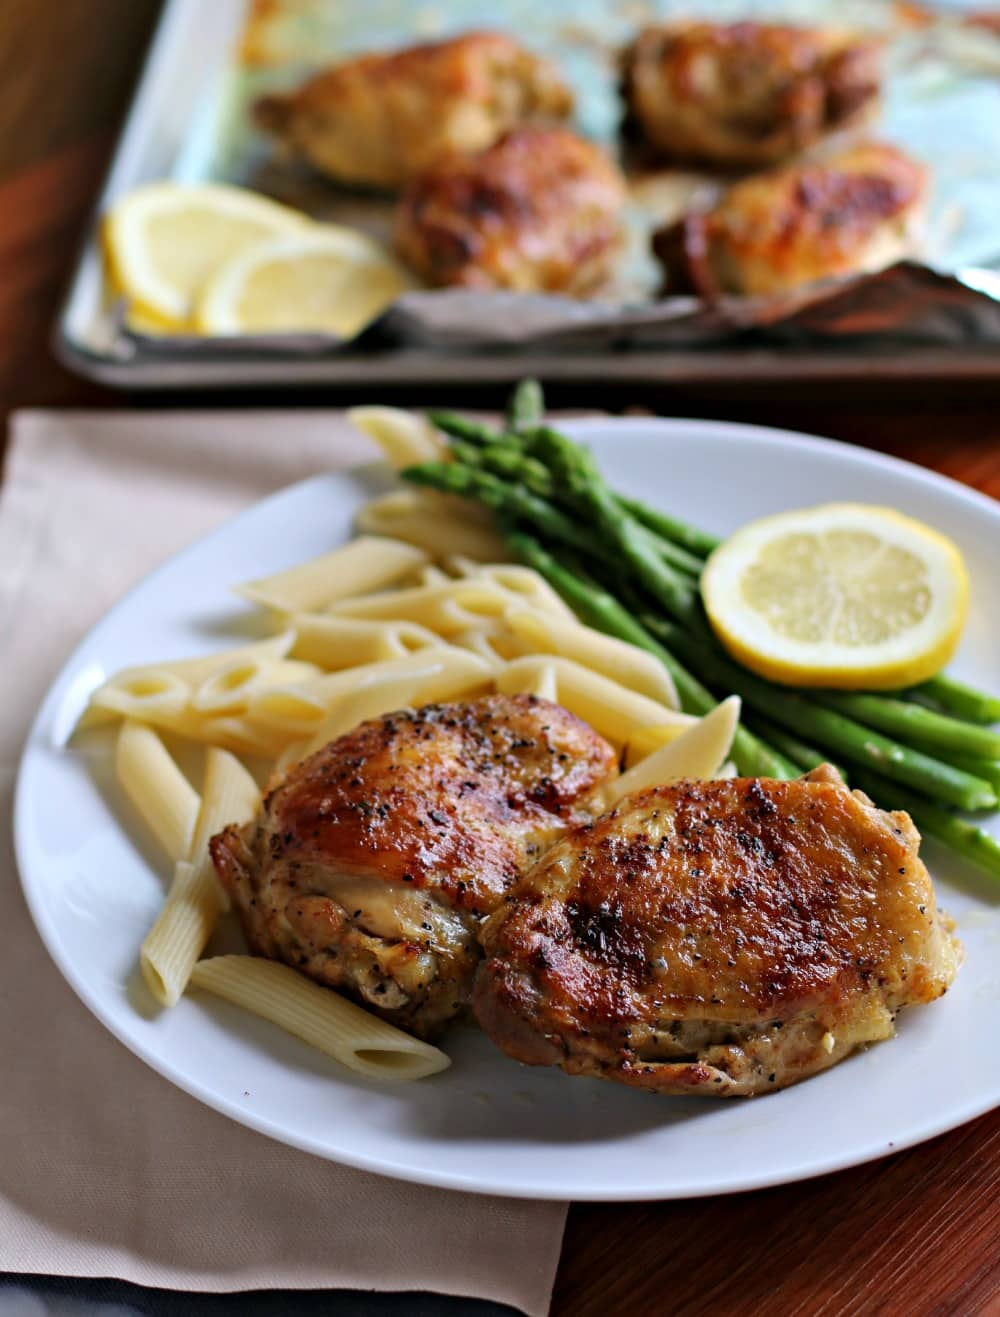 Lemon pepper chicken thighs on a plate with pasta, asparagus and a slice of lemon